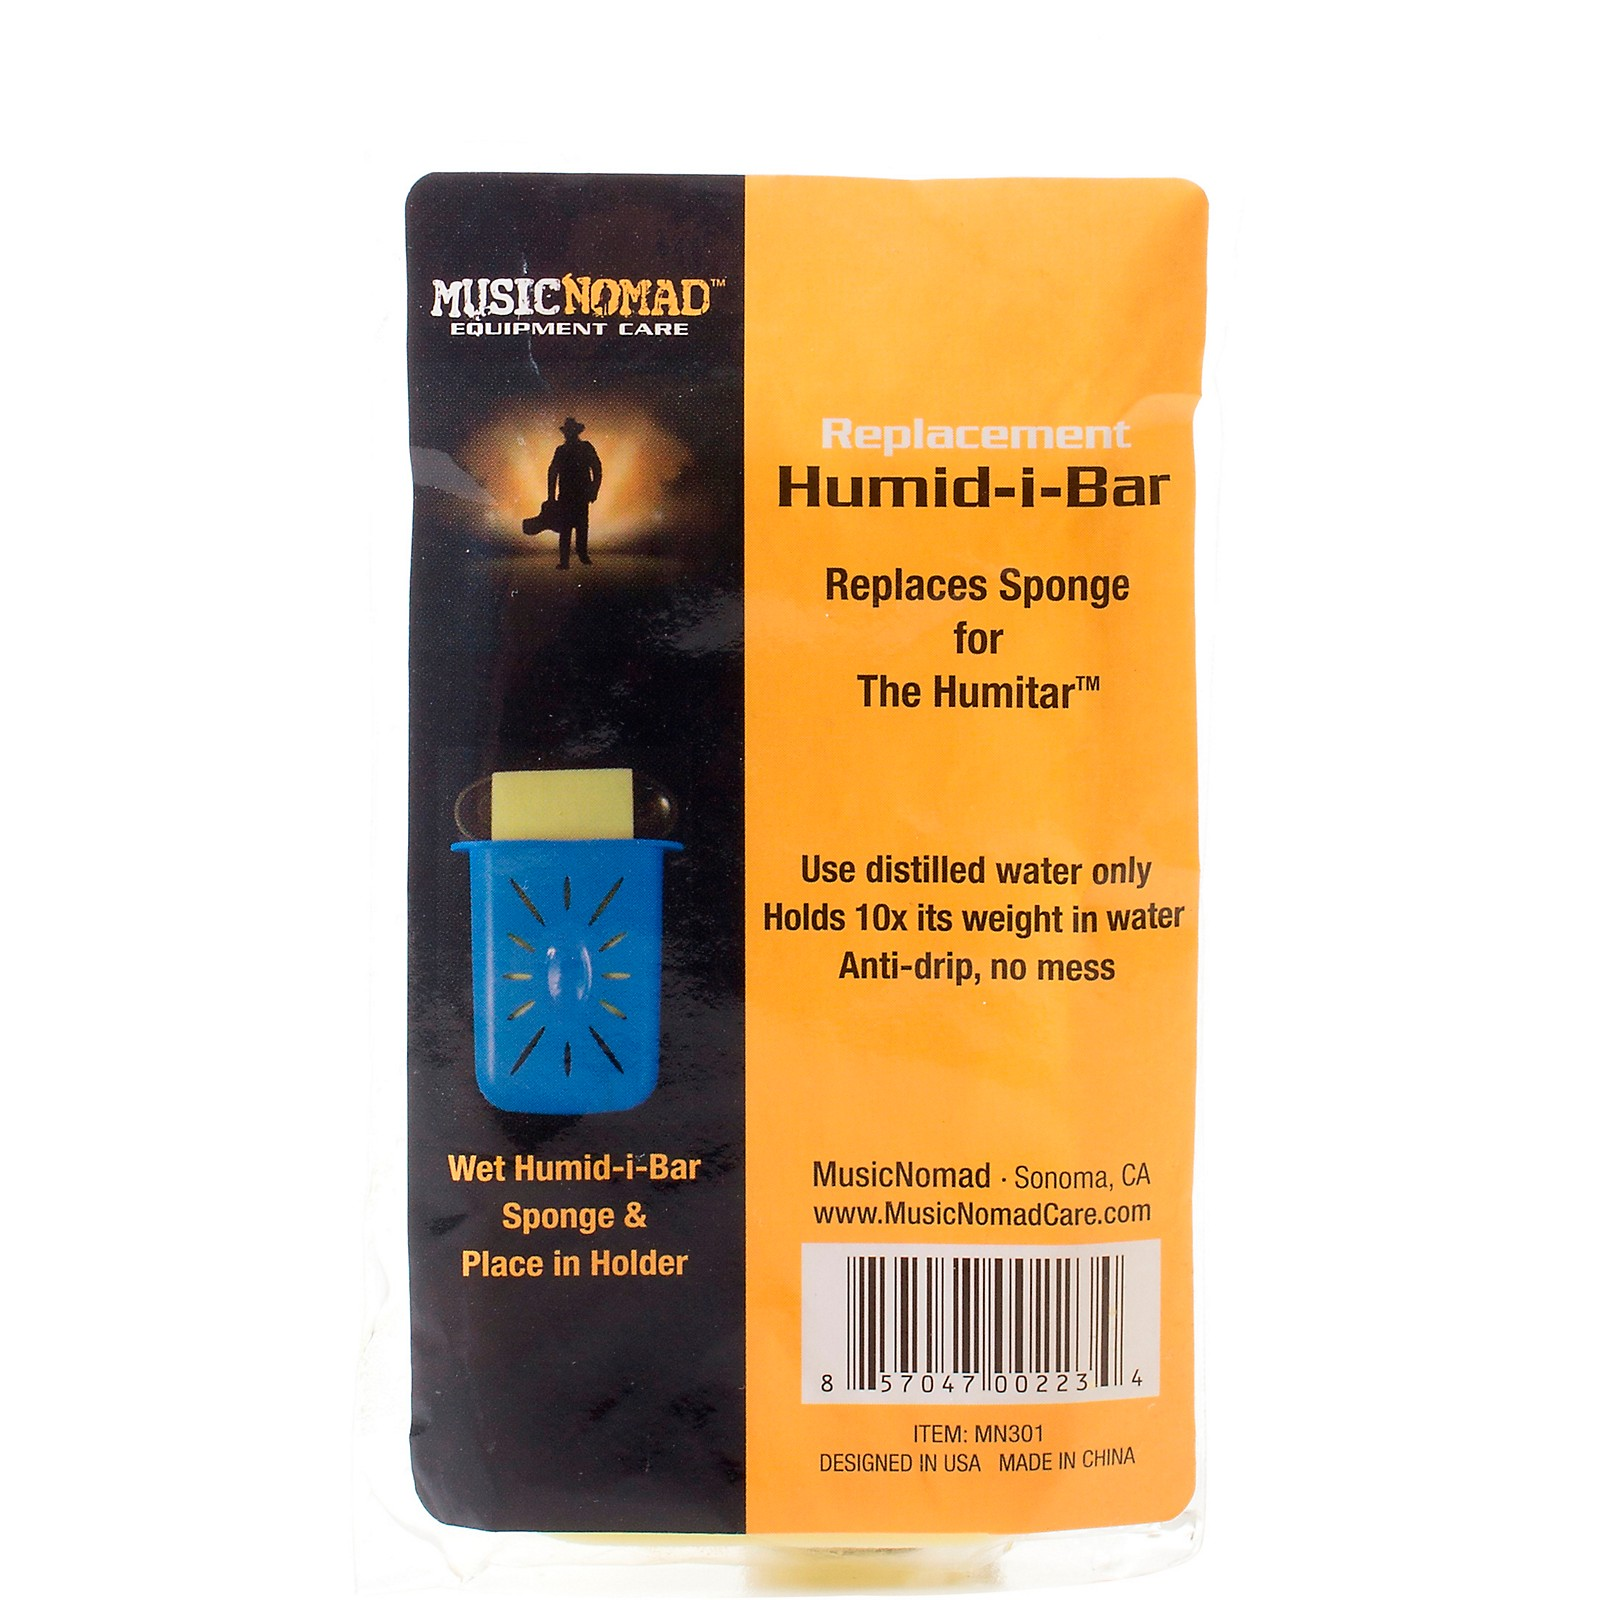 MusicNomad Humid-i-Bar Replacement Sponge for the Humitar Humidifier